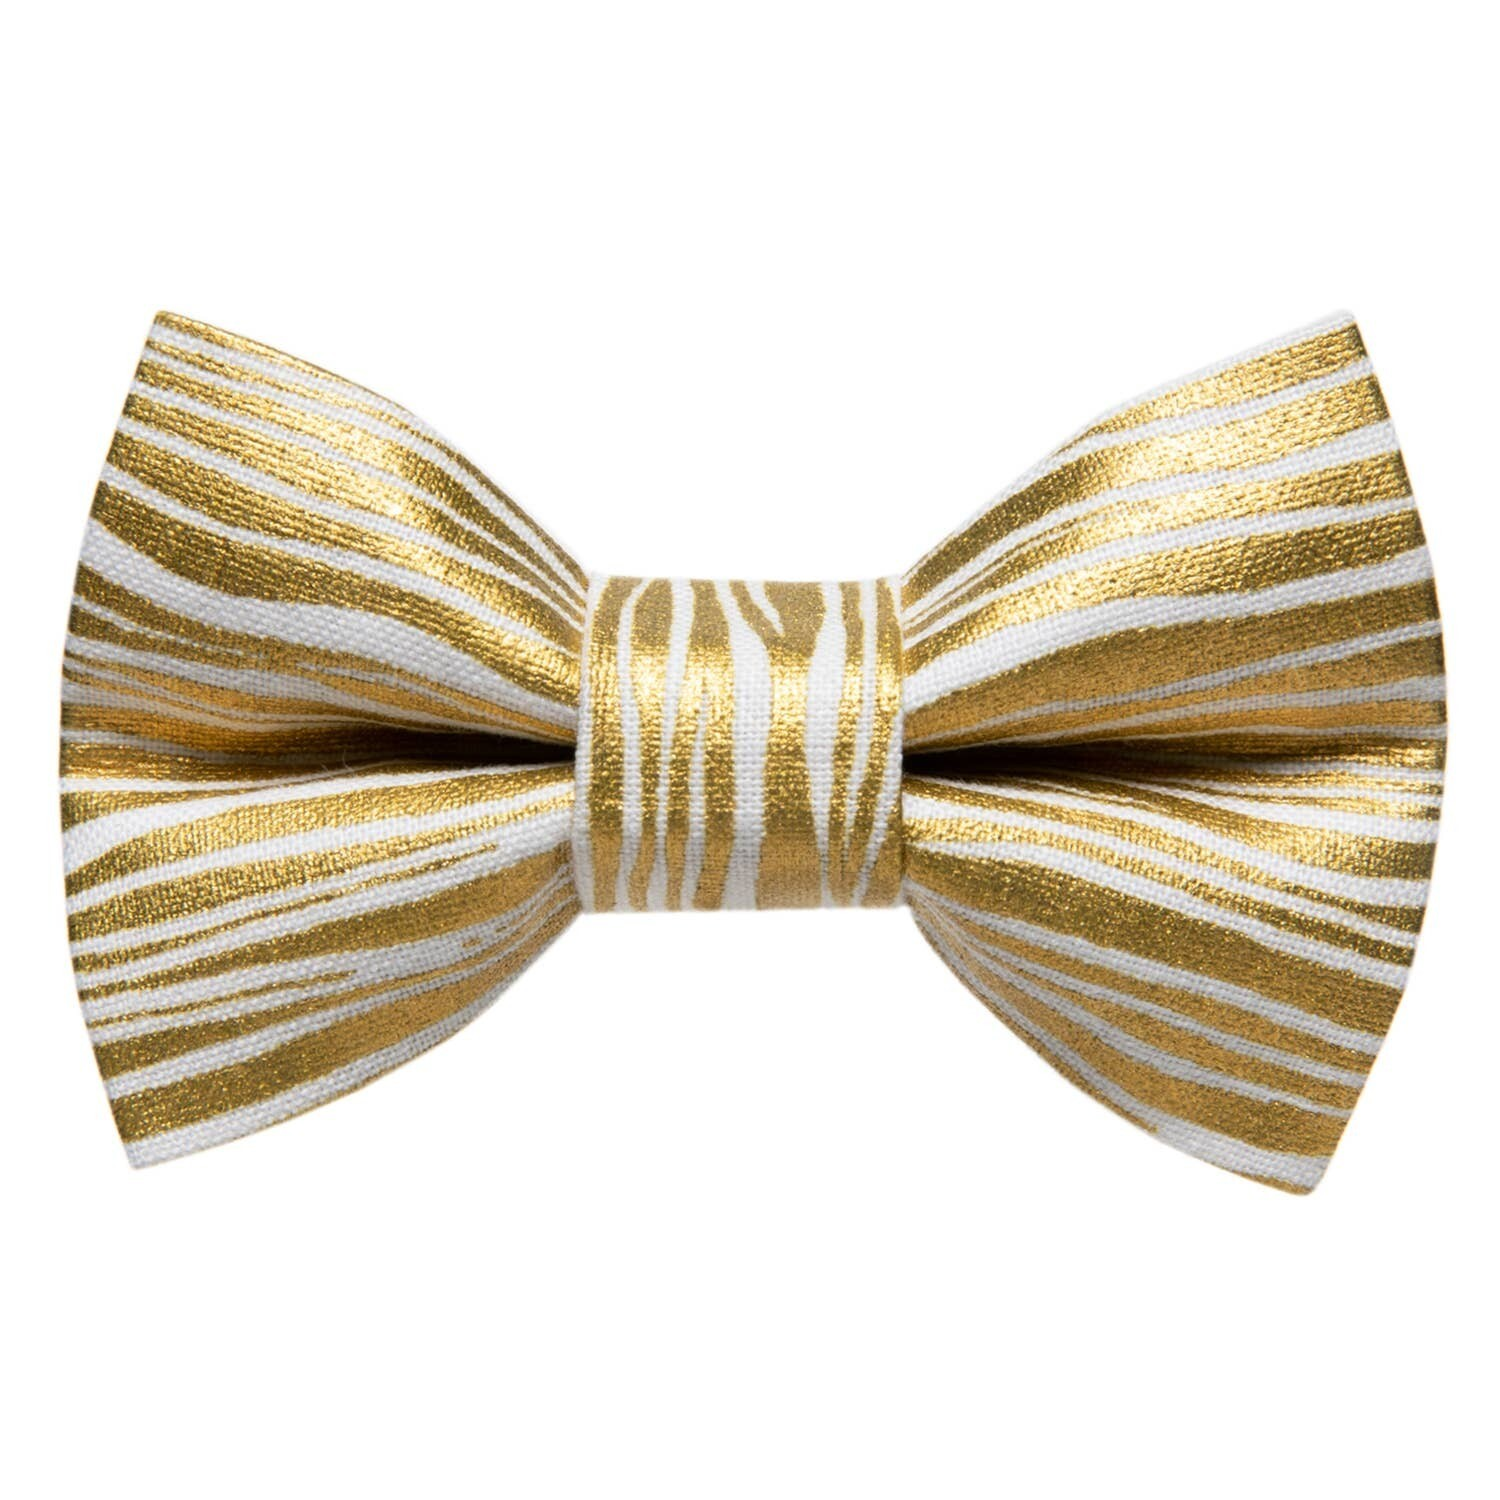 The Branching Out - Large Pet Bow Tie